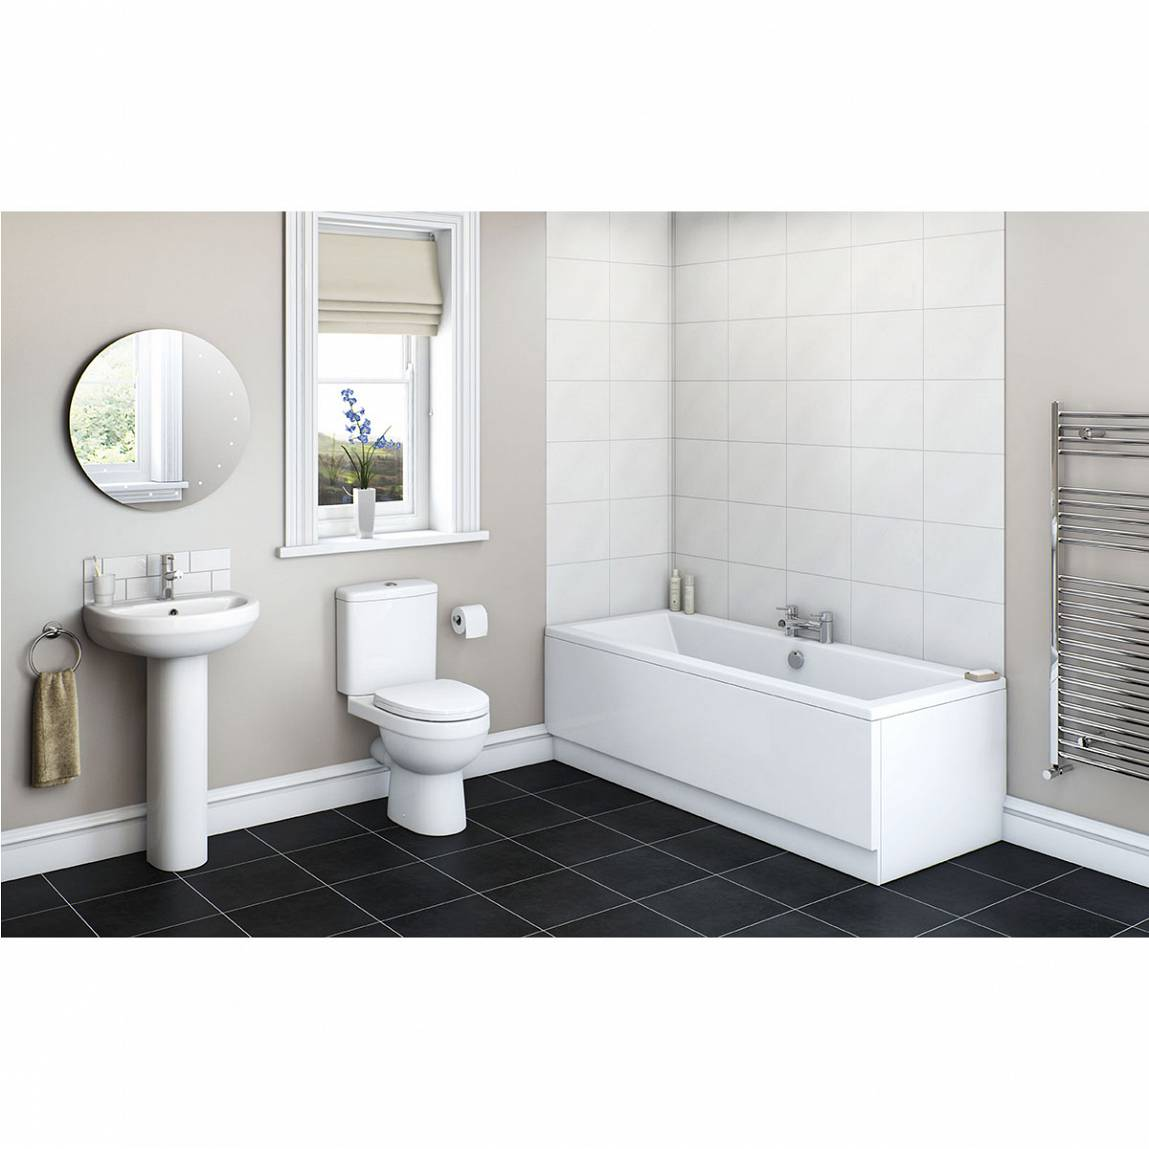 Image of Energy Bathroom Set with Chelsea 1700 x 750 Bath Suite